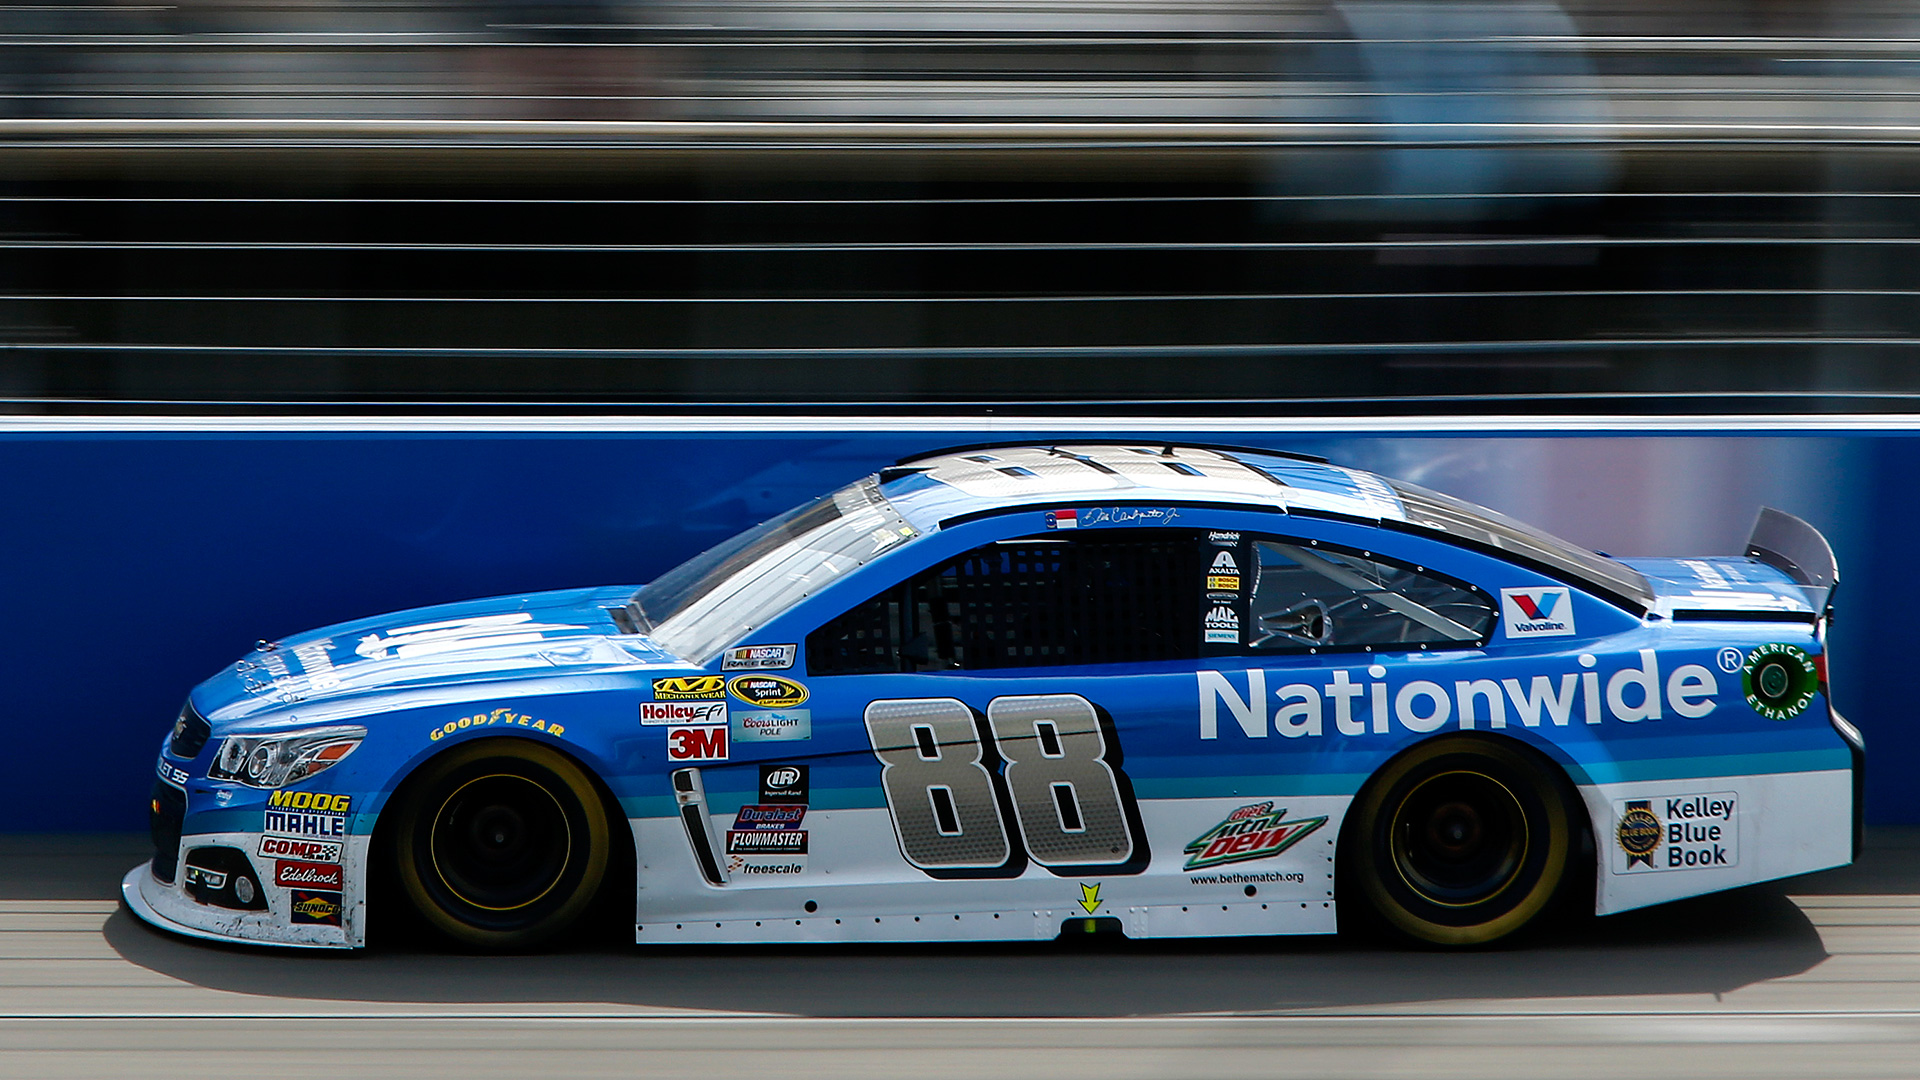 Geico 500 results: Dale Earnhardt Jr. gets into Chase with victory